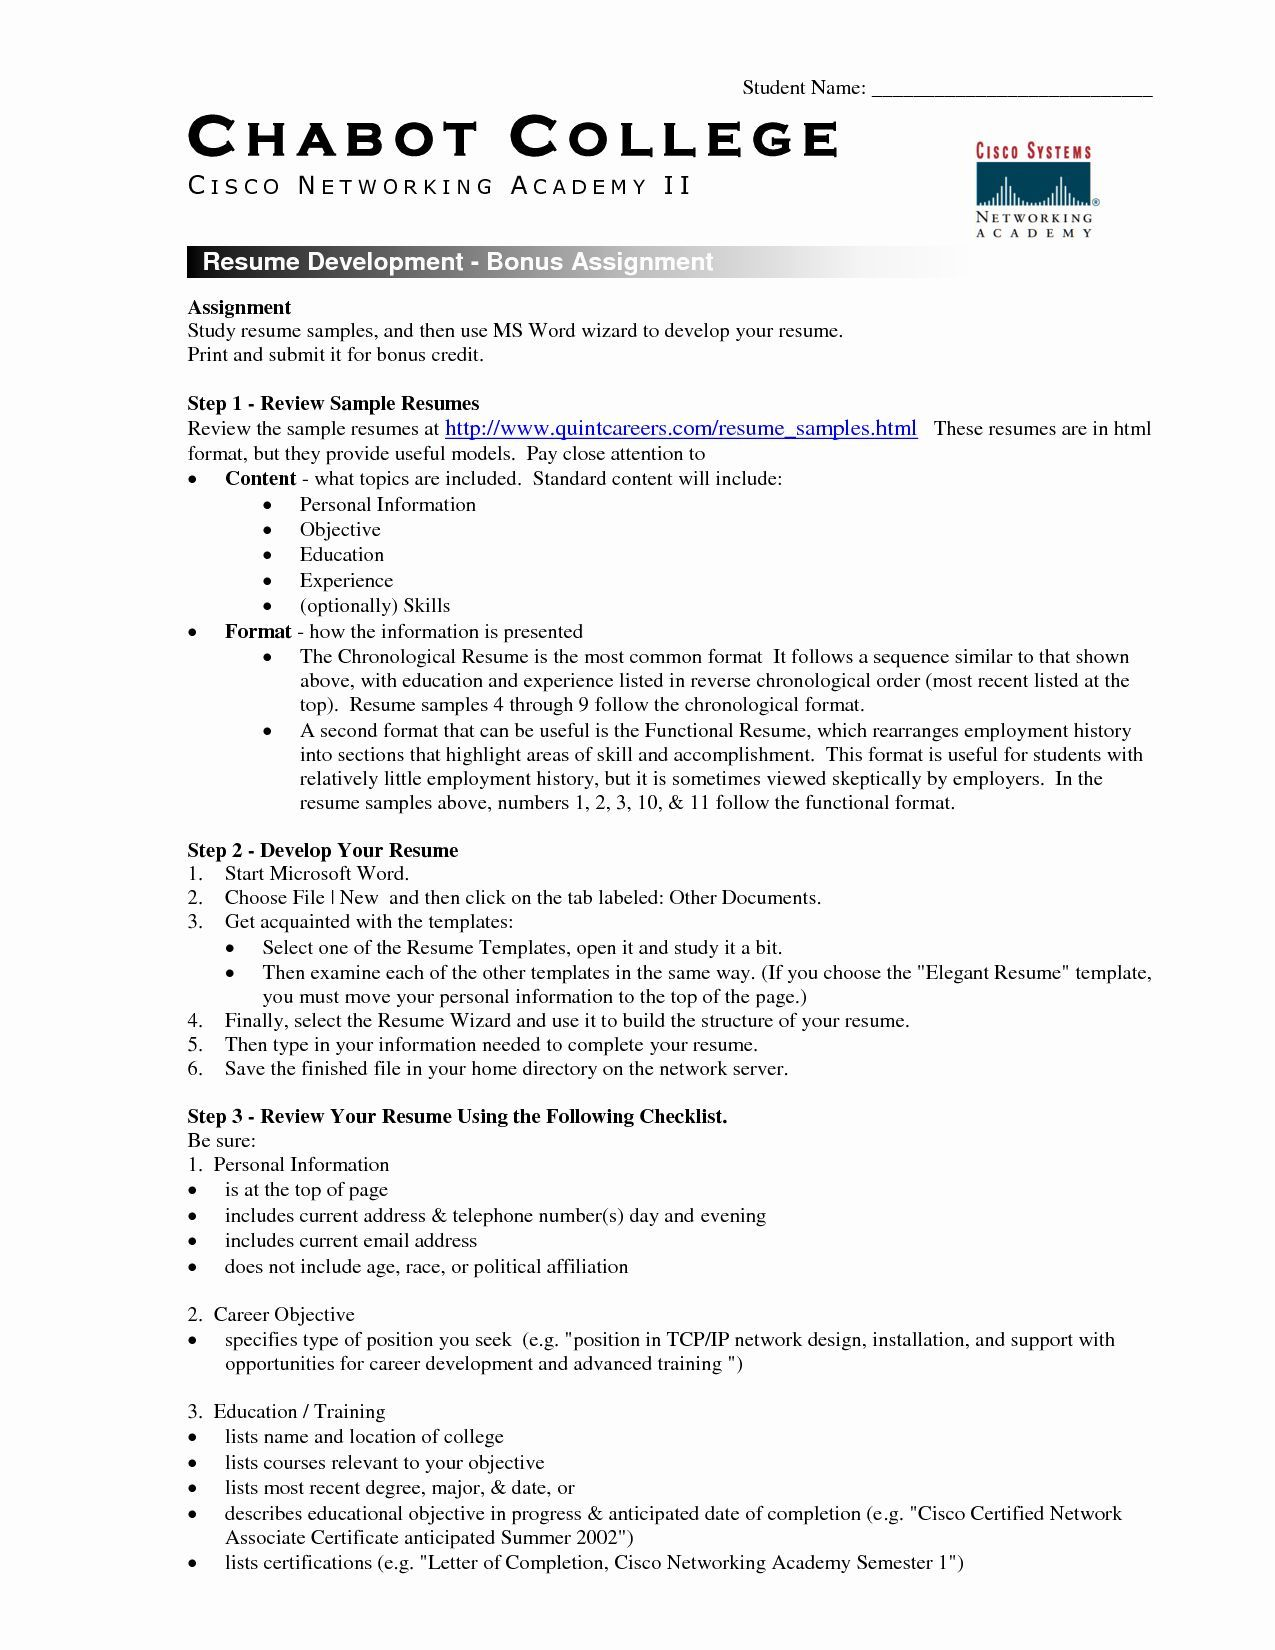 The amazing Free Student Resume Templates Microsoft Word